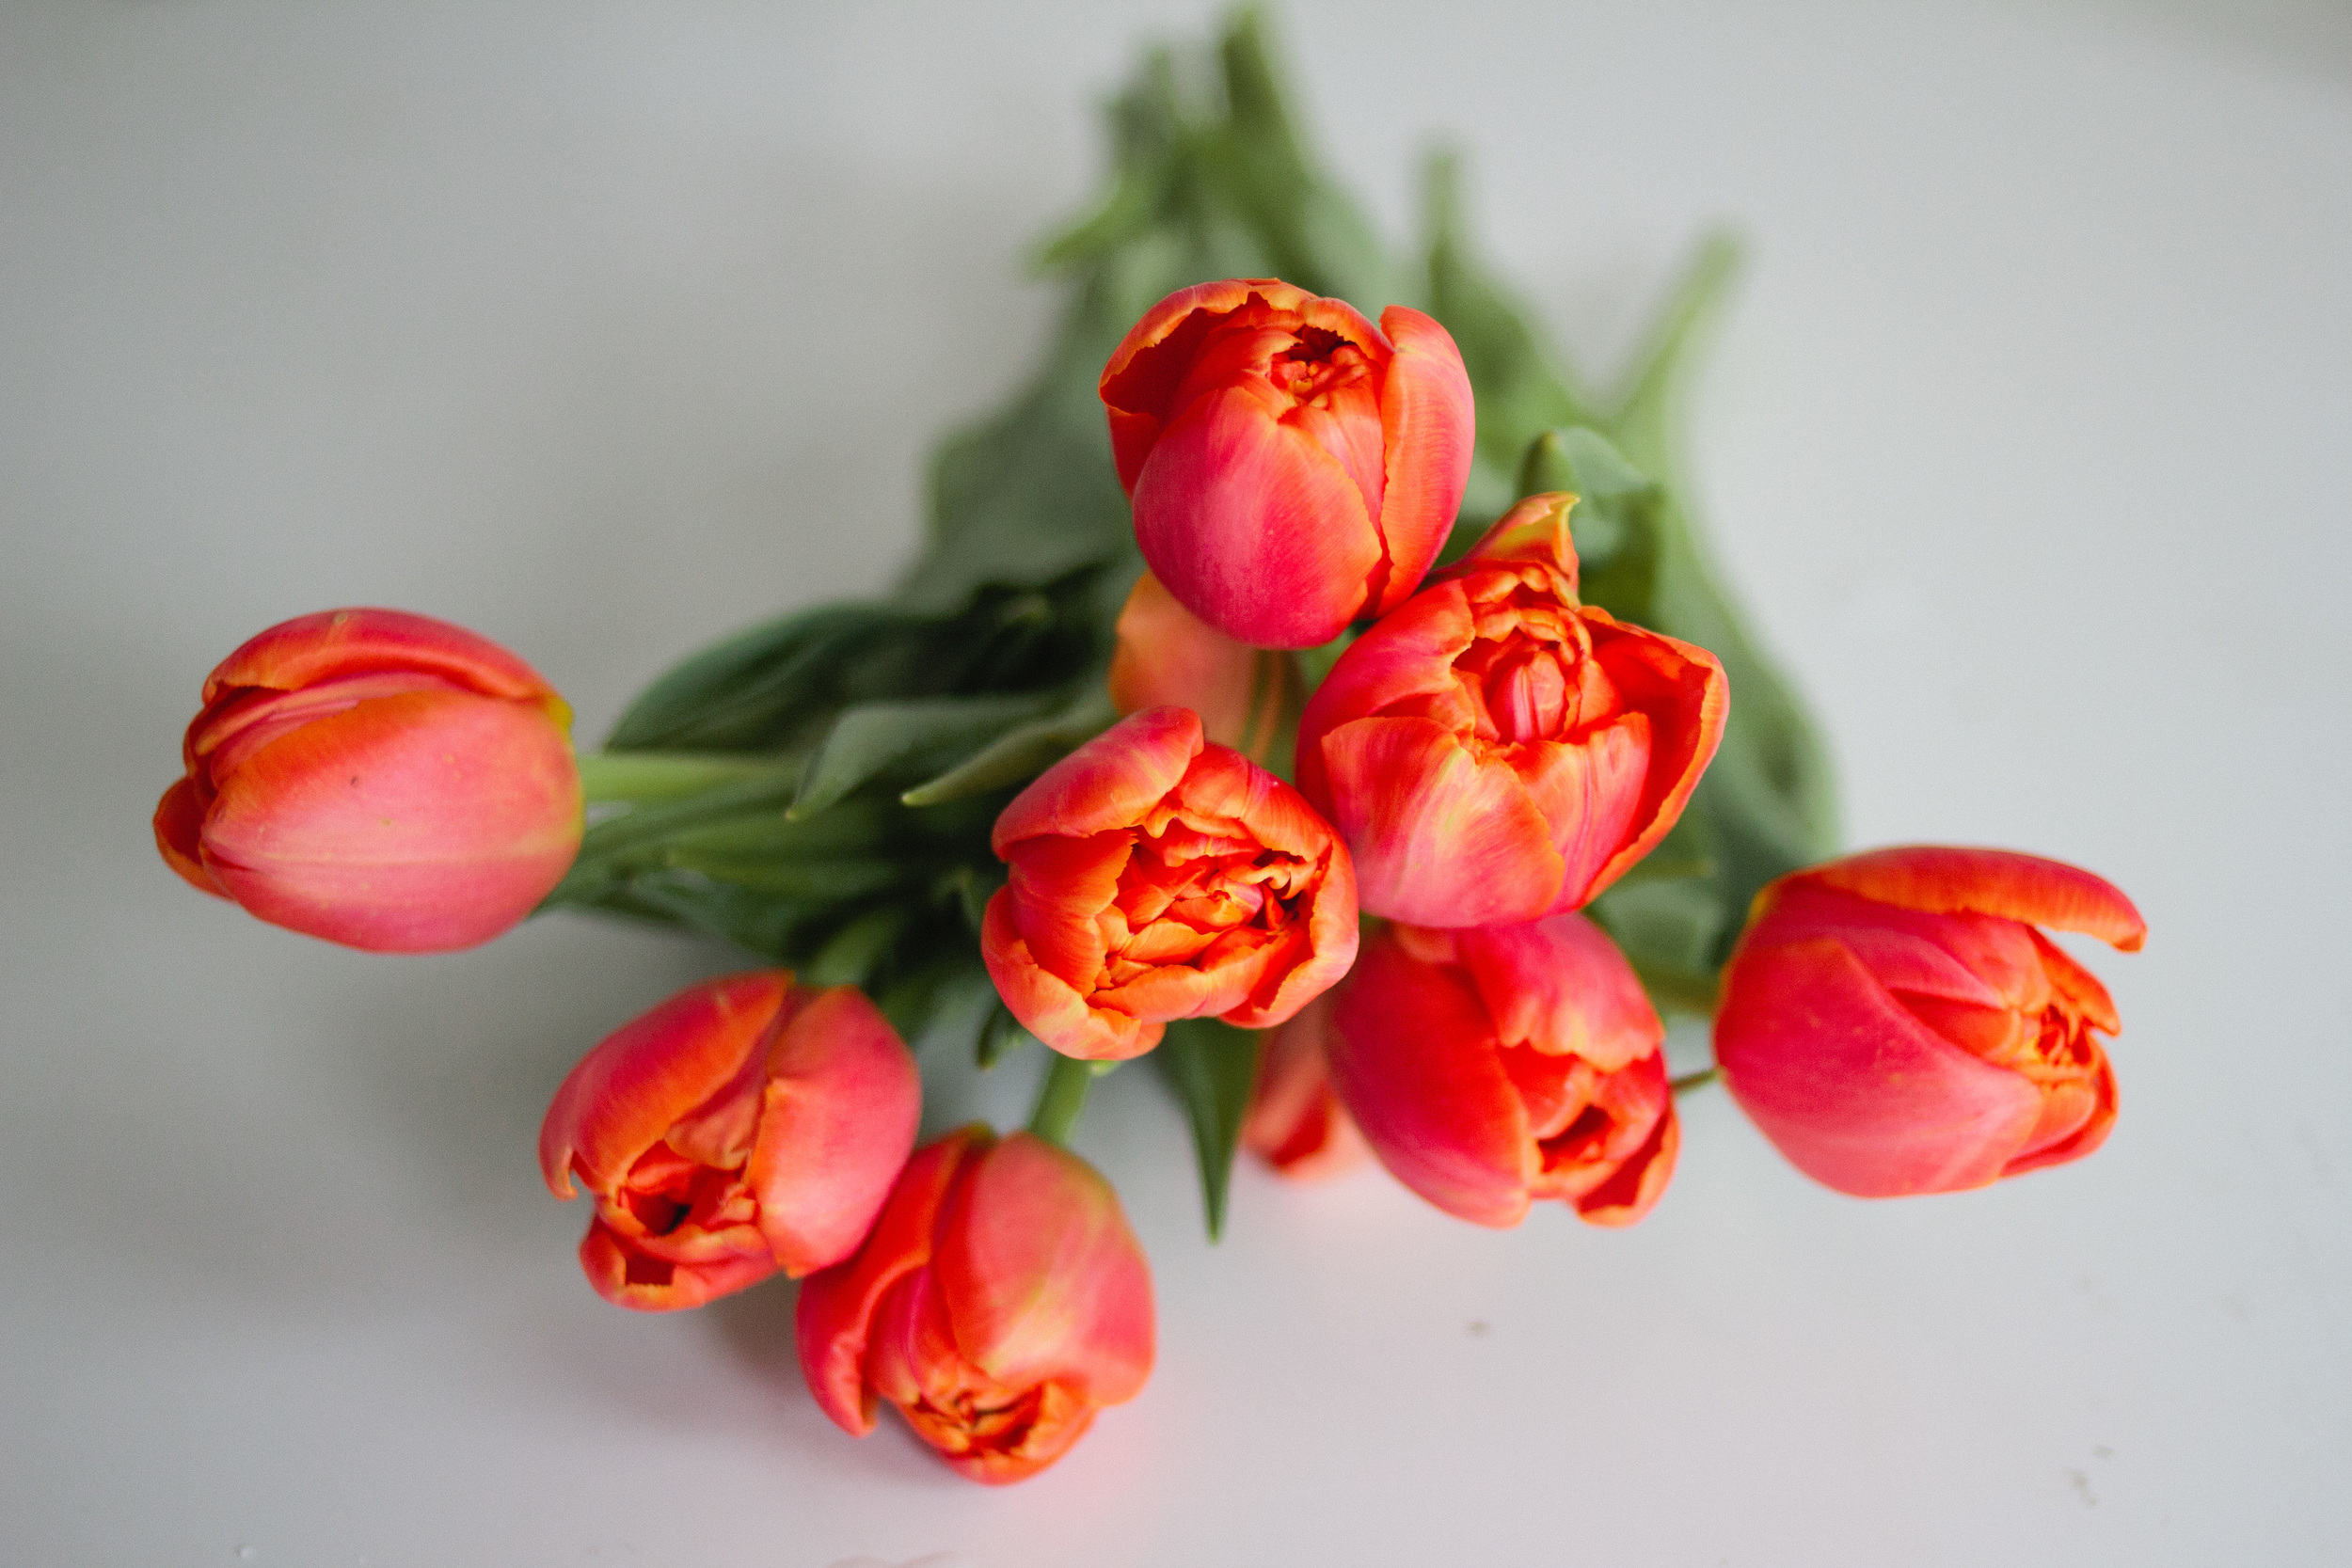 Tulips are wonderfully easy to care for - no need to cut the stems, justensure that any foliage below the water line is removed. Then, simplychange the water as needed and voila - a long-lasting symbol of spring to be enjoyed everyday (at least until tulip season ends)!